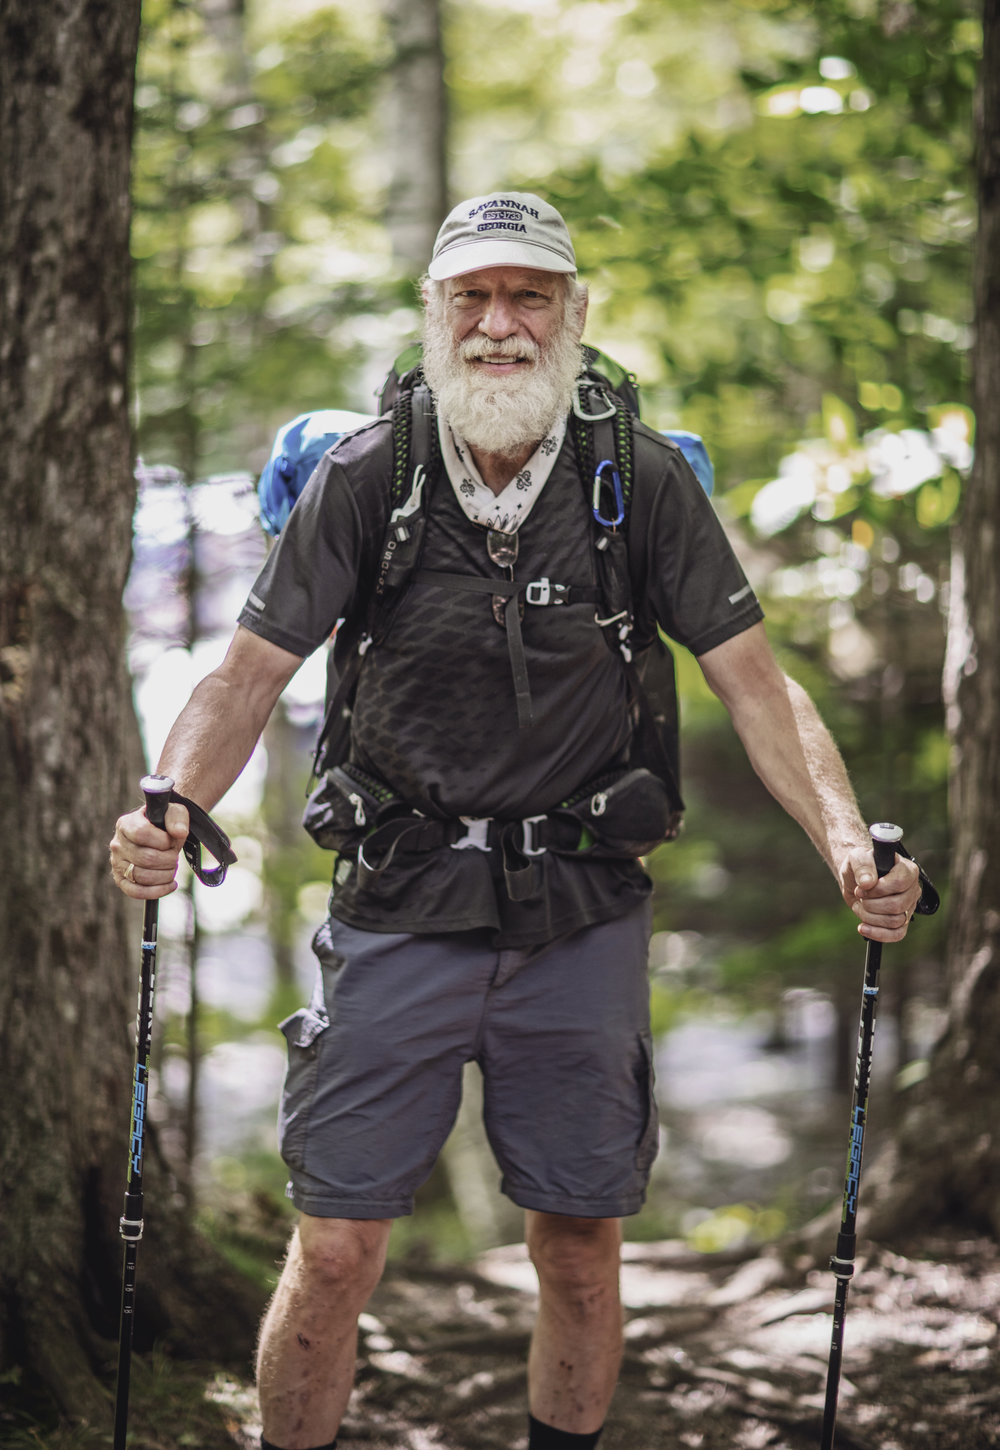 """I started the Appalachian Trail because I have a degree in Appalachian folk music from Berea College in Kentucky. I decided that now I'm retired at 59 and a half years old, I wanted to continue my teaching of folk music and the best way to support my ideas would be to immerse myself in the culture of the Appalachian Mountains, and the best way to immerse myself in the culture is to hike the trail!"""